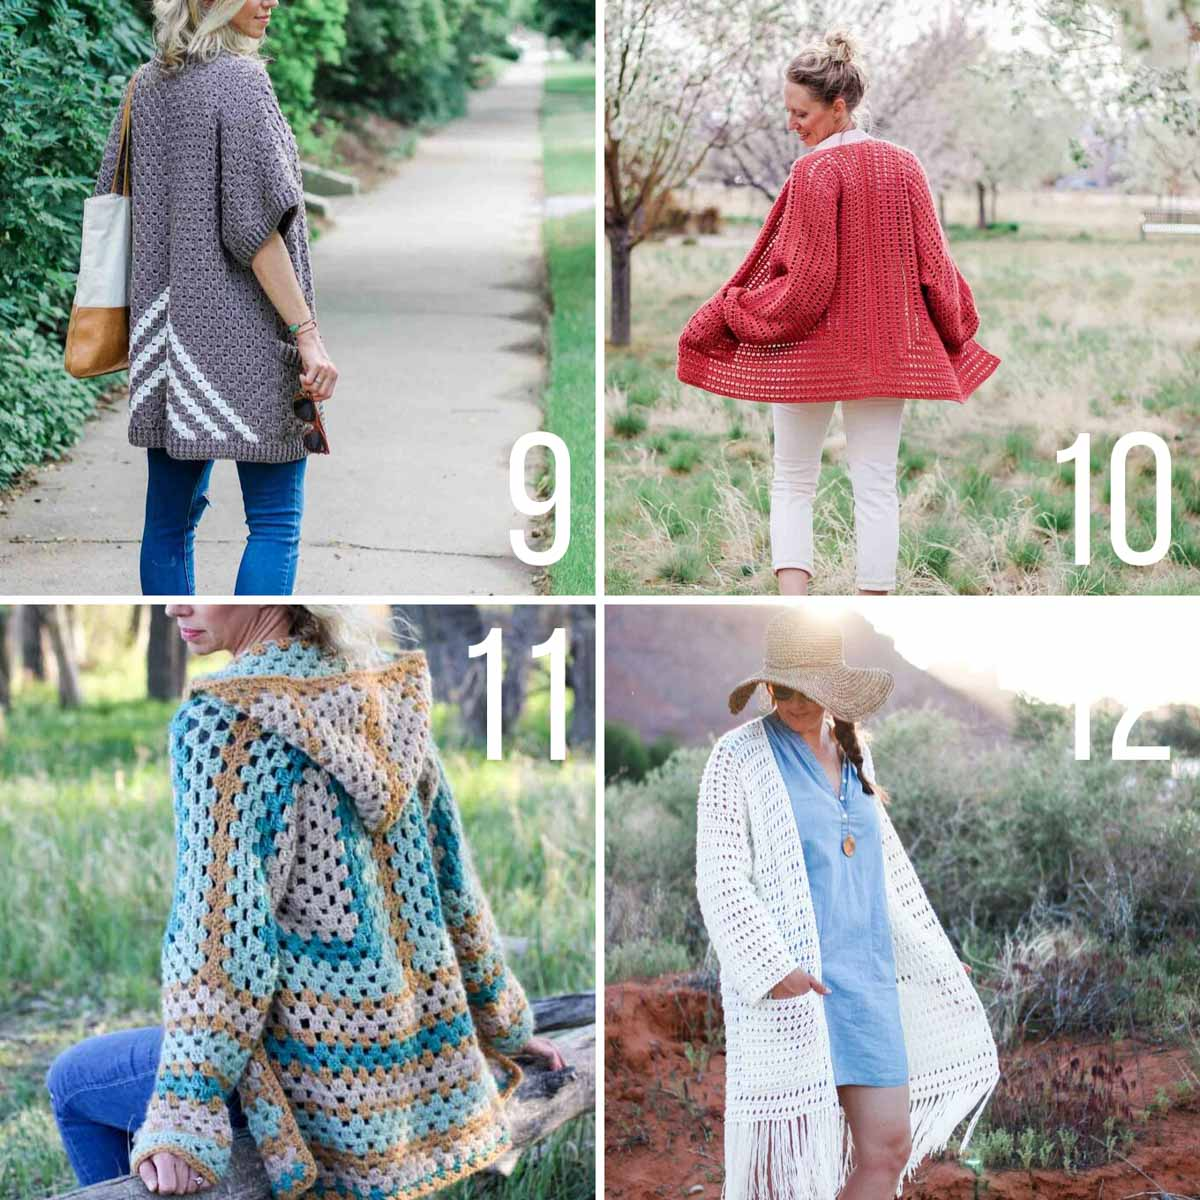 Four free crochet cardigan patterns made from rectangles or hexagons. Easy for beginners!